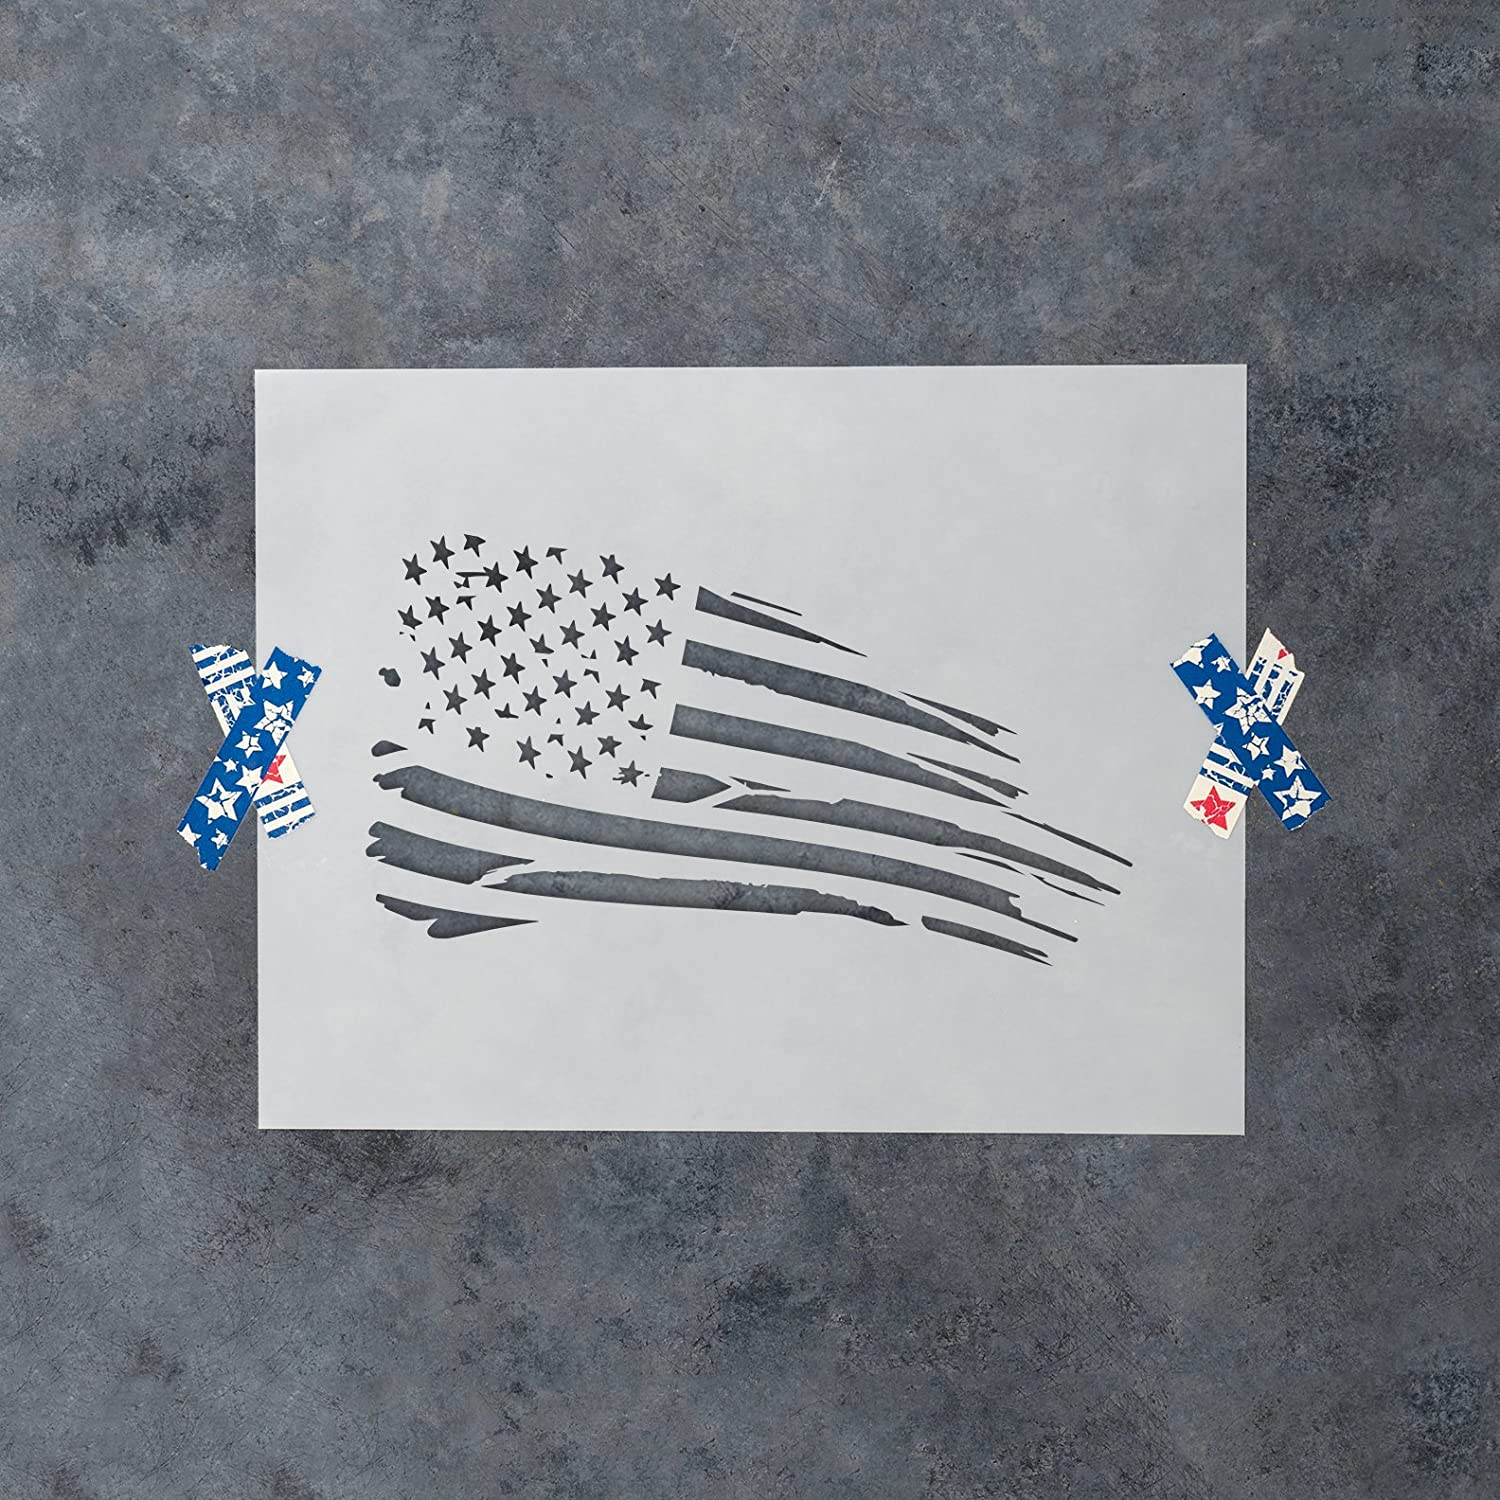 Reusable Stencils for Painting in Small /& Large Sizes American Flag Rugged Stencil Template for Walls and Crafts